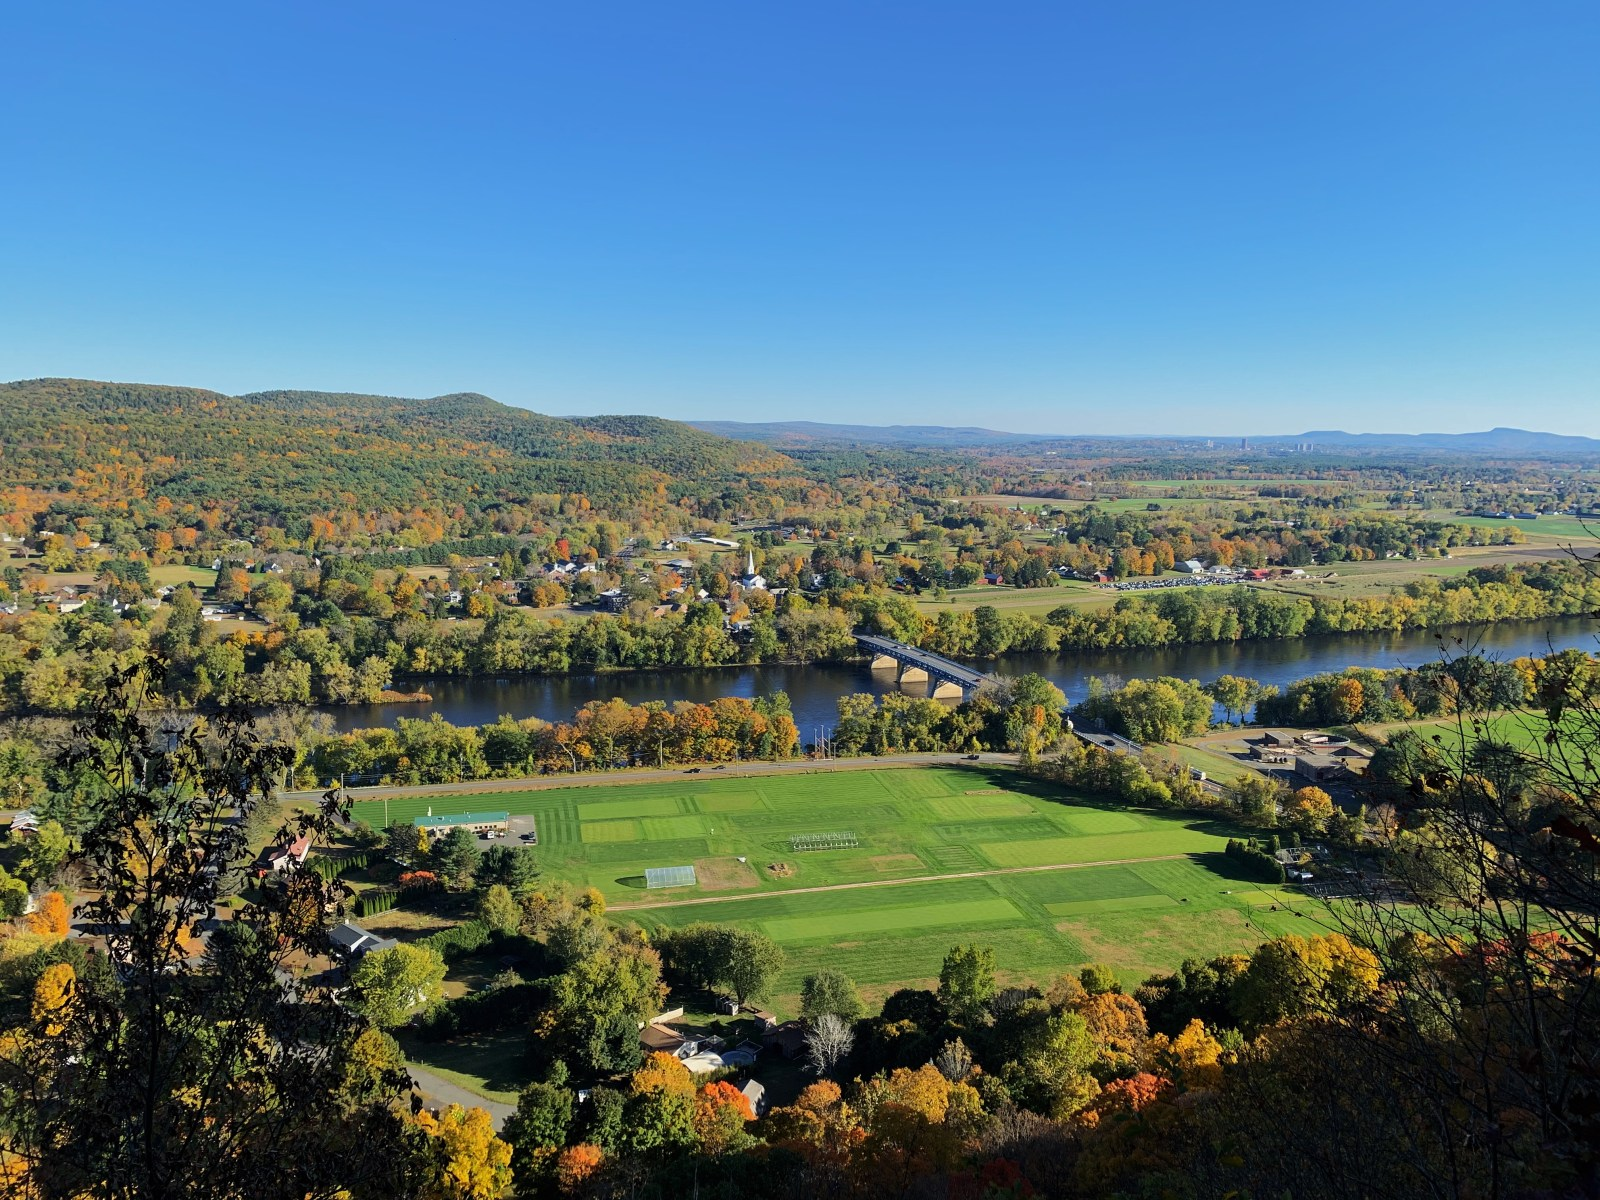 10 Fun Places To Go With Friends Near UMass Amherst